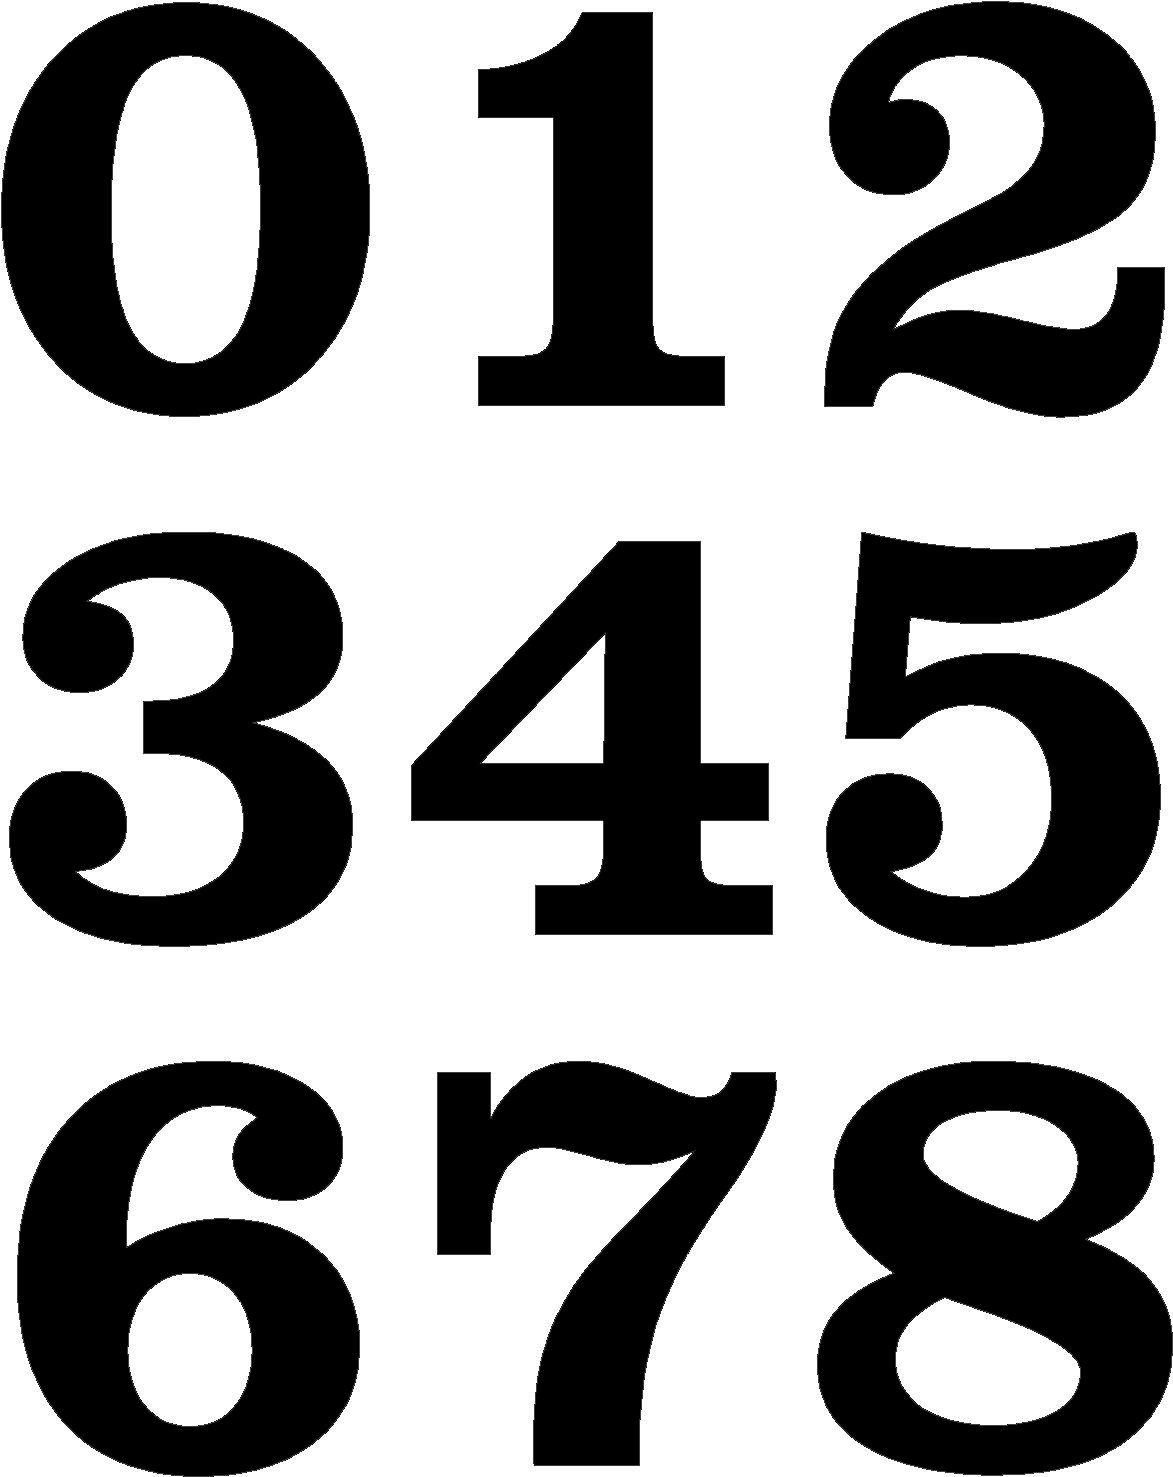 Vintage Racing Number Fonts | www.pixshark.com - Images ...